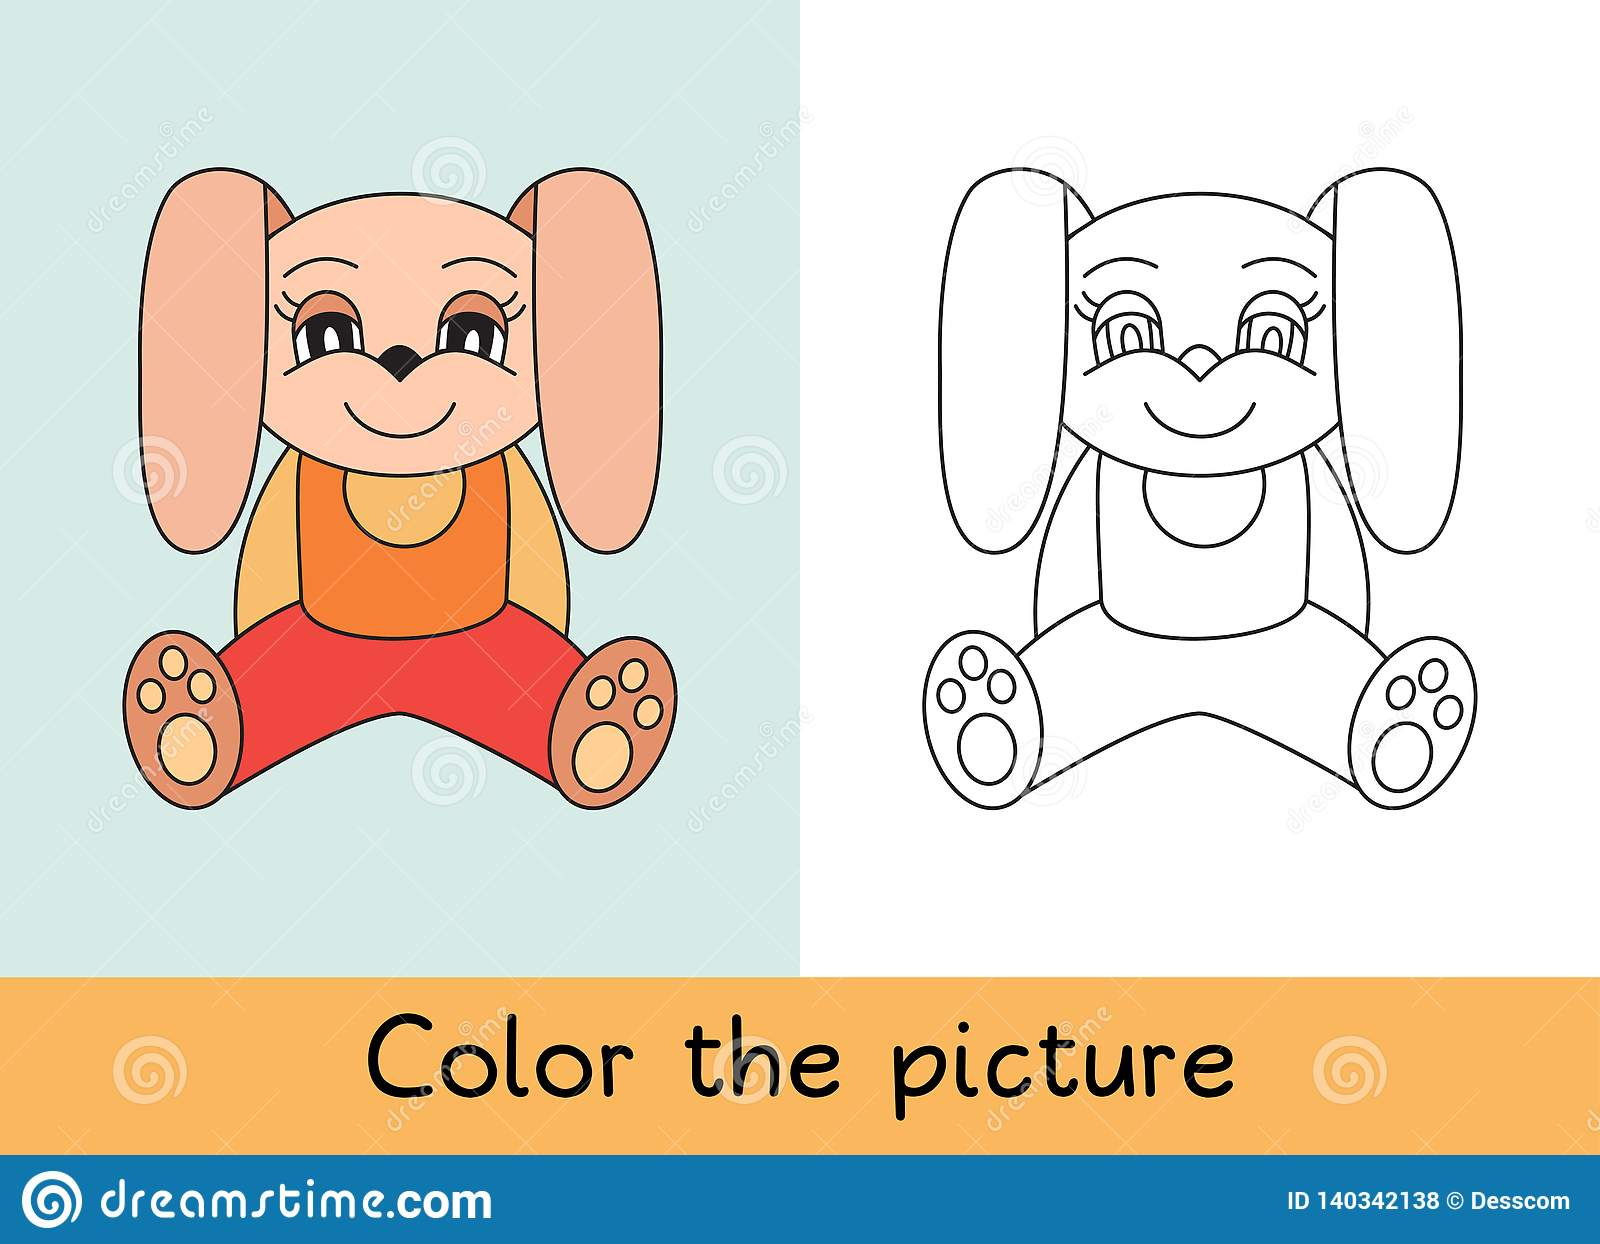 Coloring book. Rabbit. Cartoon animall. Kids game. Color picture. Learning by playing. Task for children